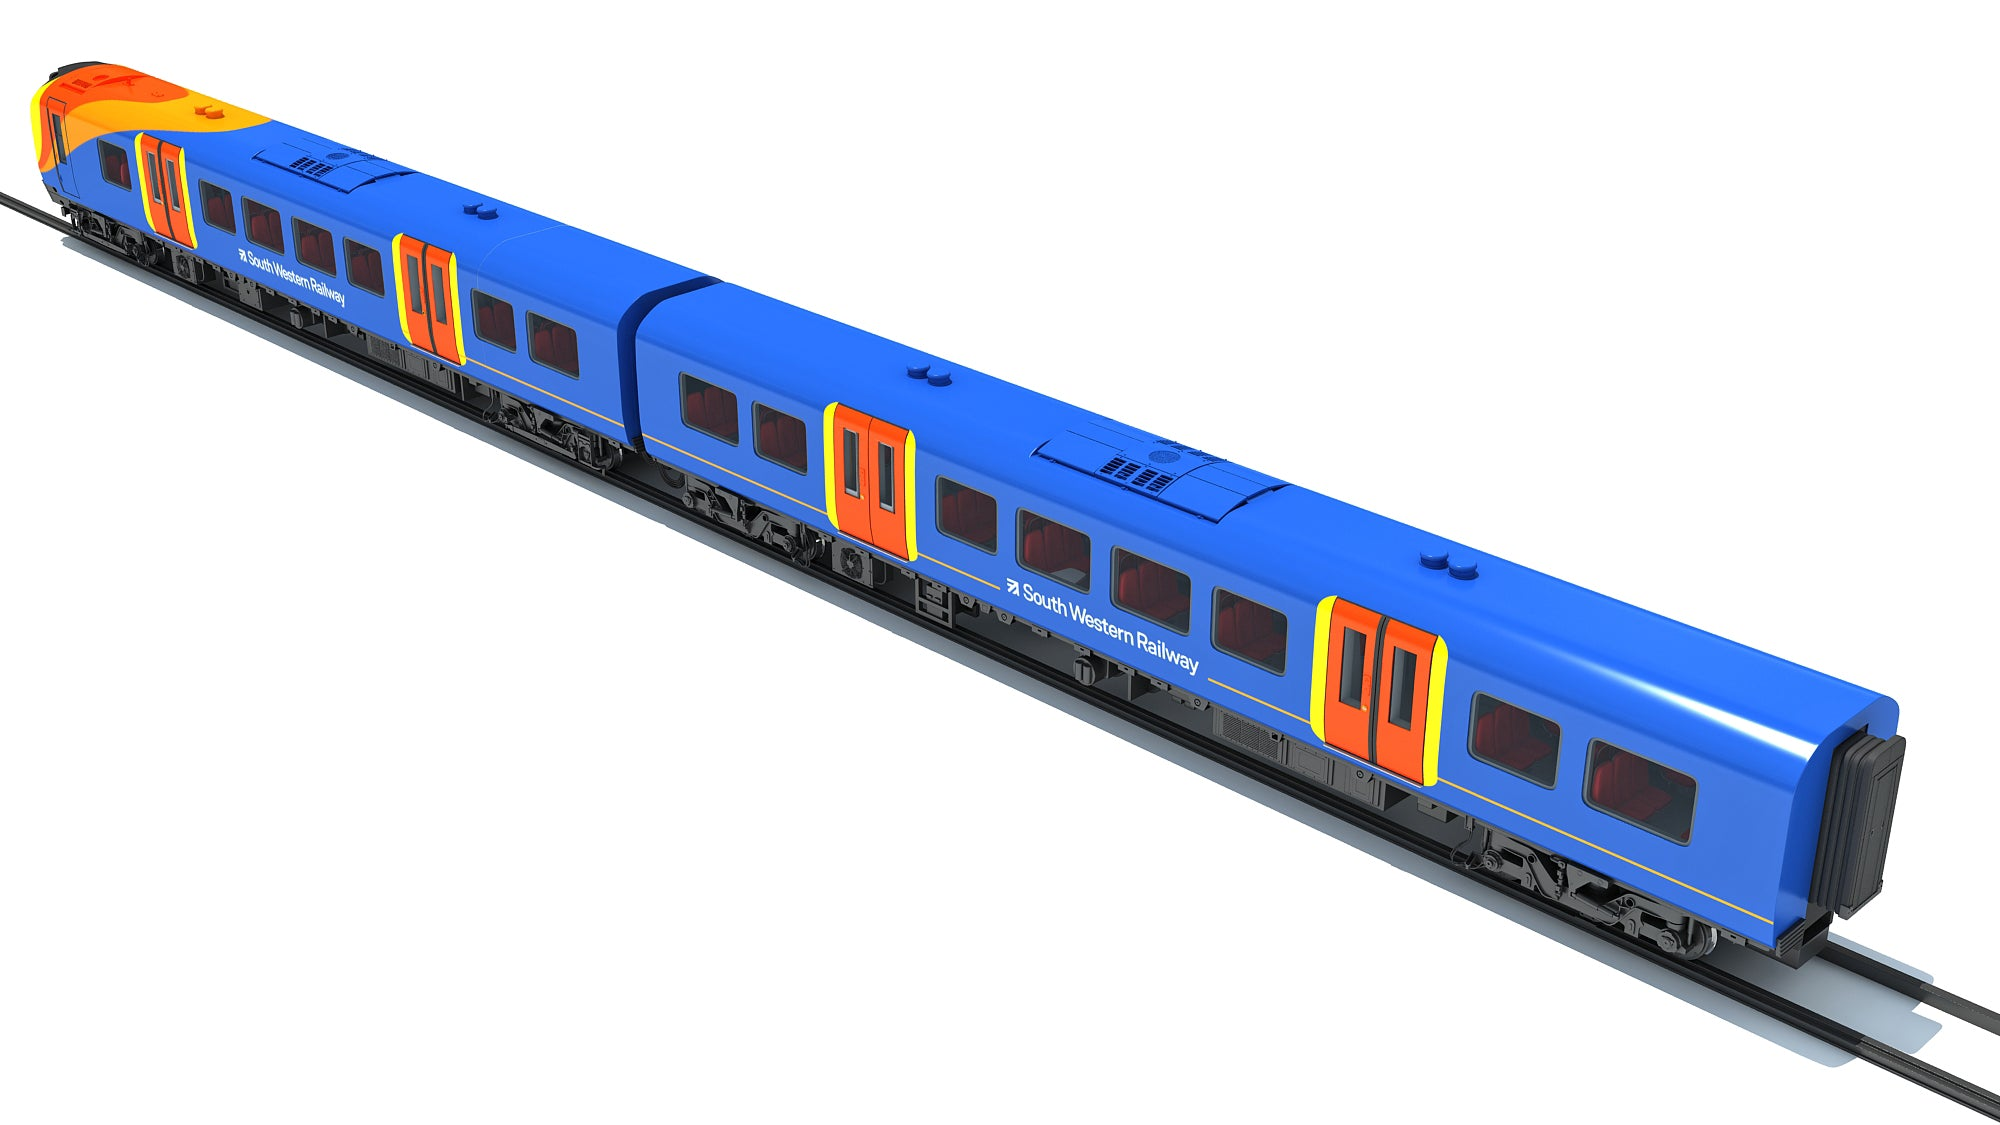 British South West Rail Class 3D Model